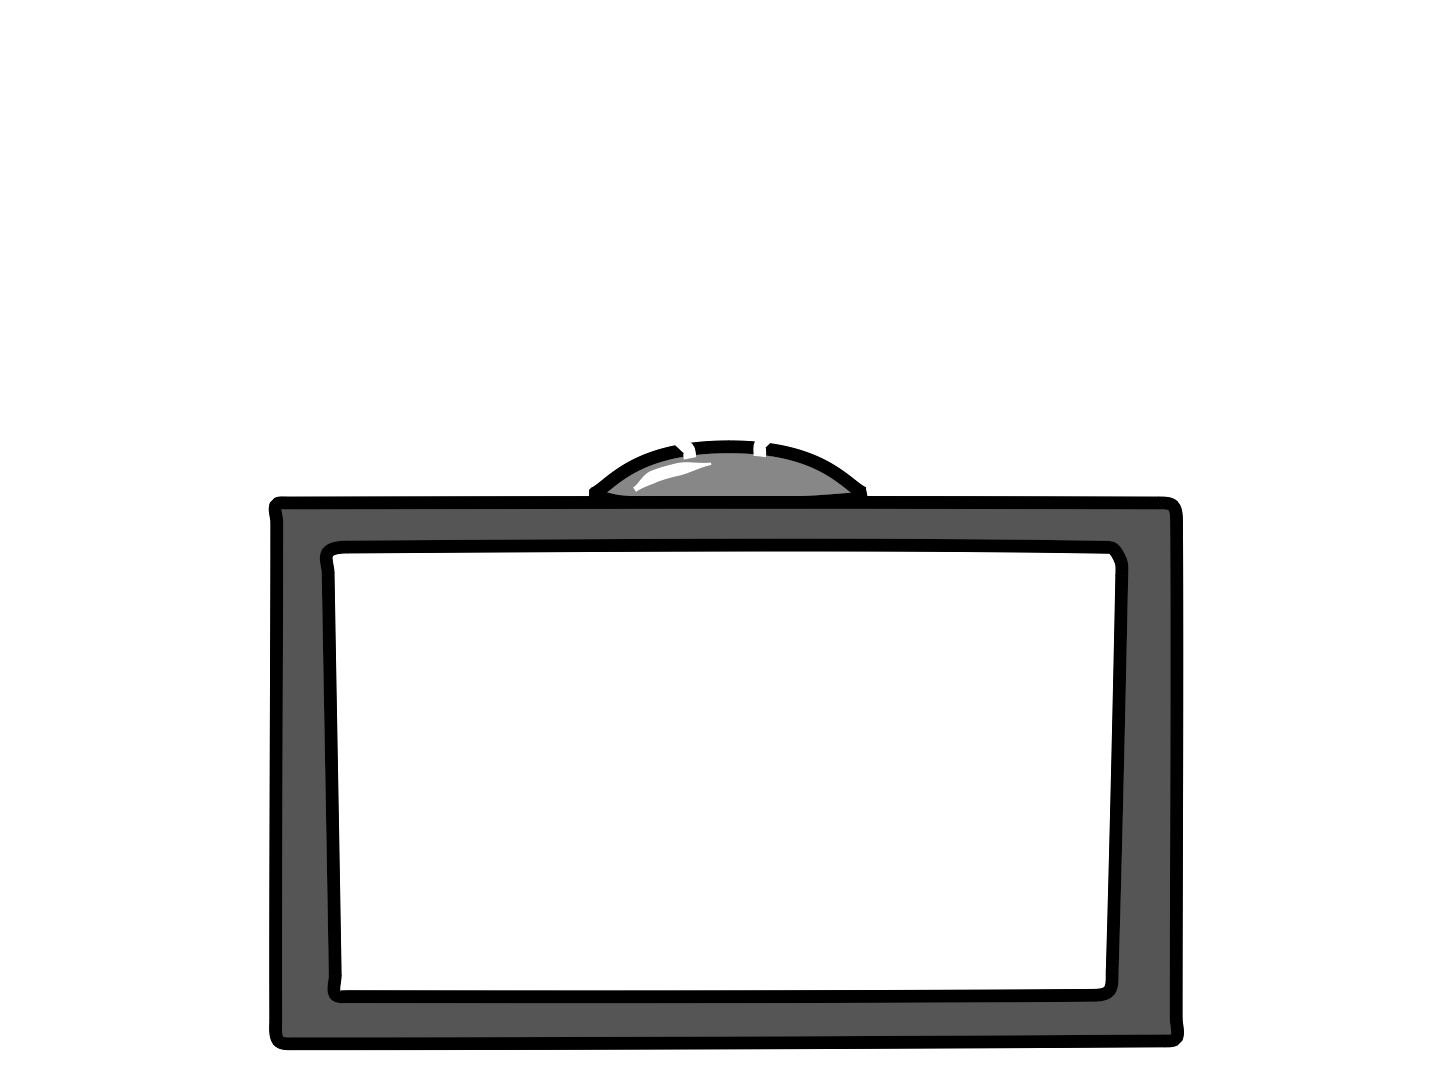 Television clipart tele. Backgrounds group free png